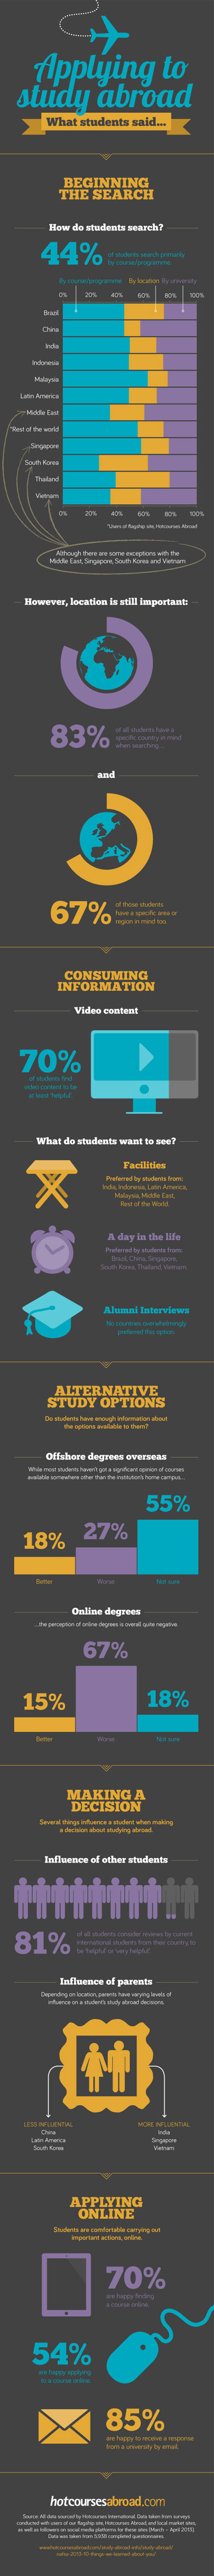 How students research studying abroad opportunities infographic